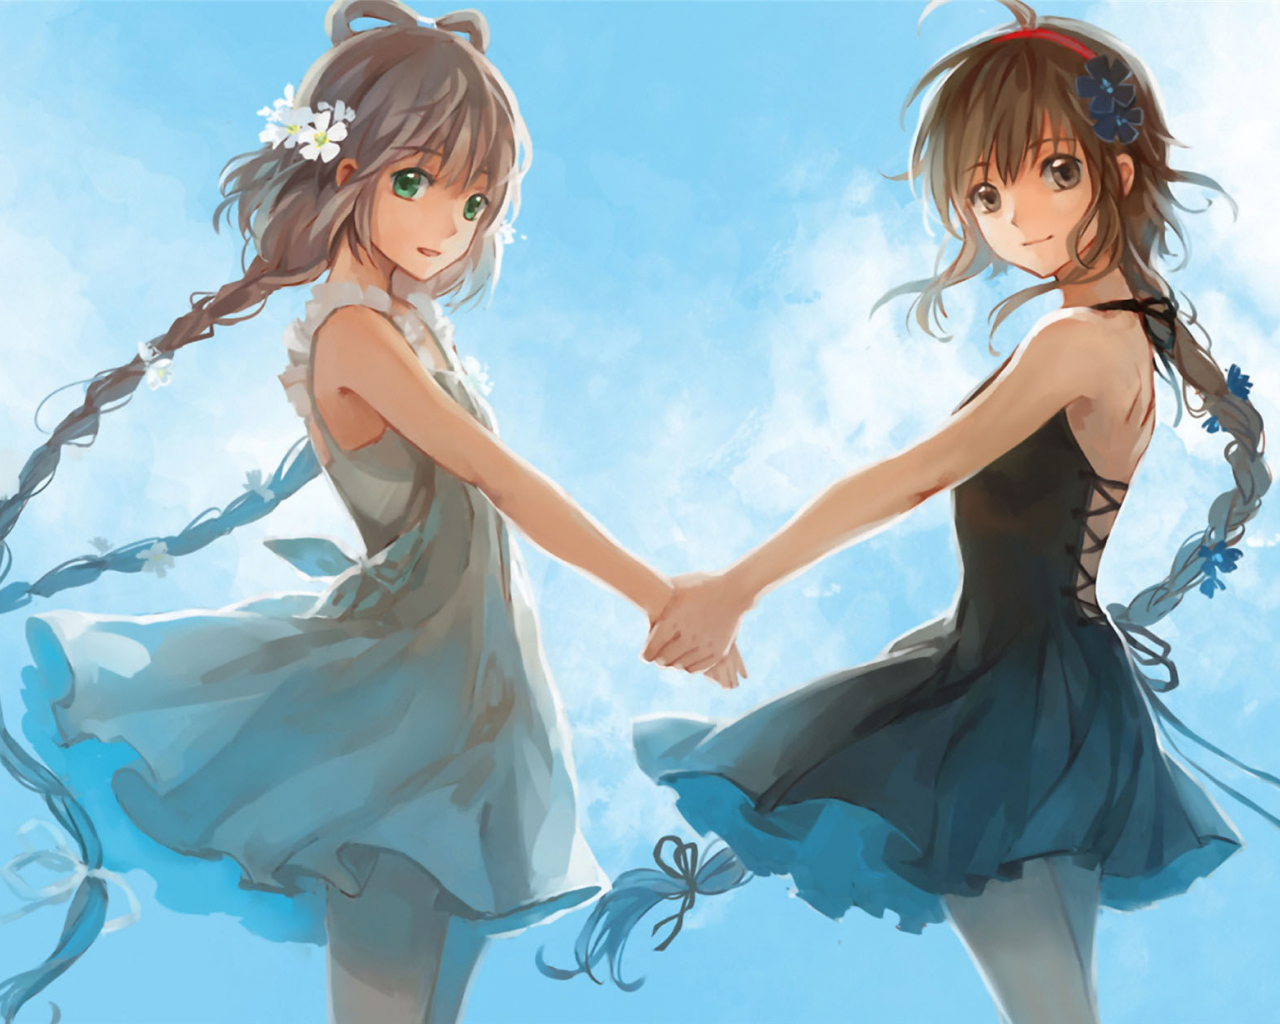 Desktop Wallpaper Luo Tianyi Yuezheng Ling Vocaloid Anime Girl Pony Tails Hd Image Picture Background C88c11